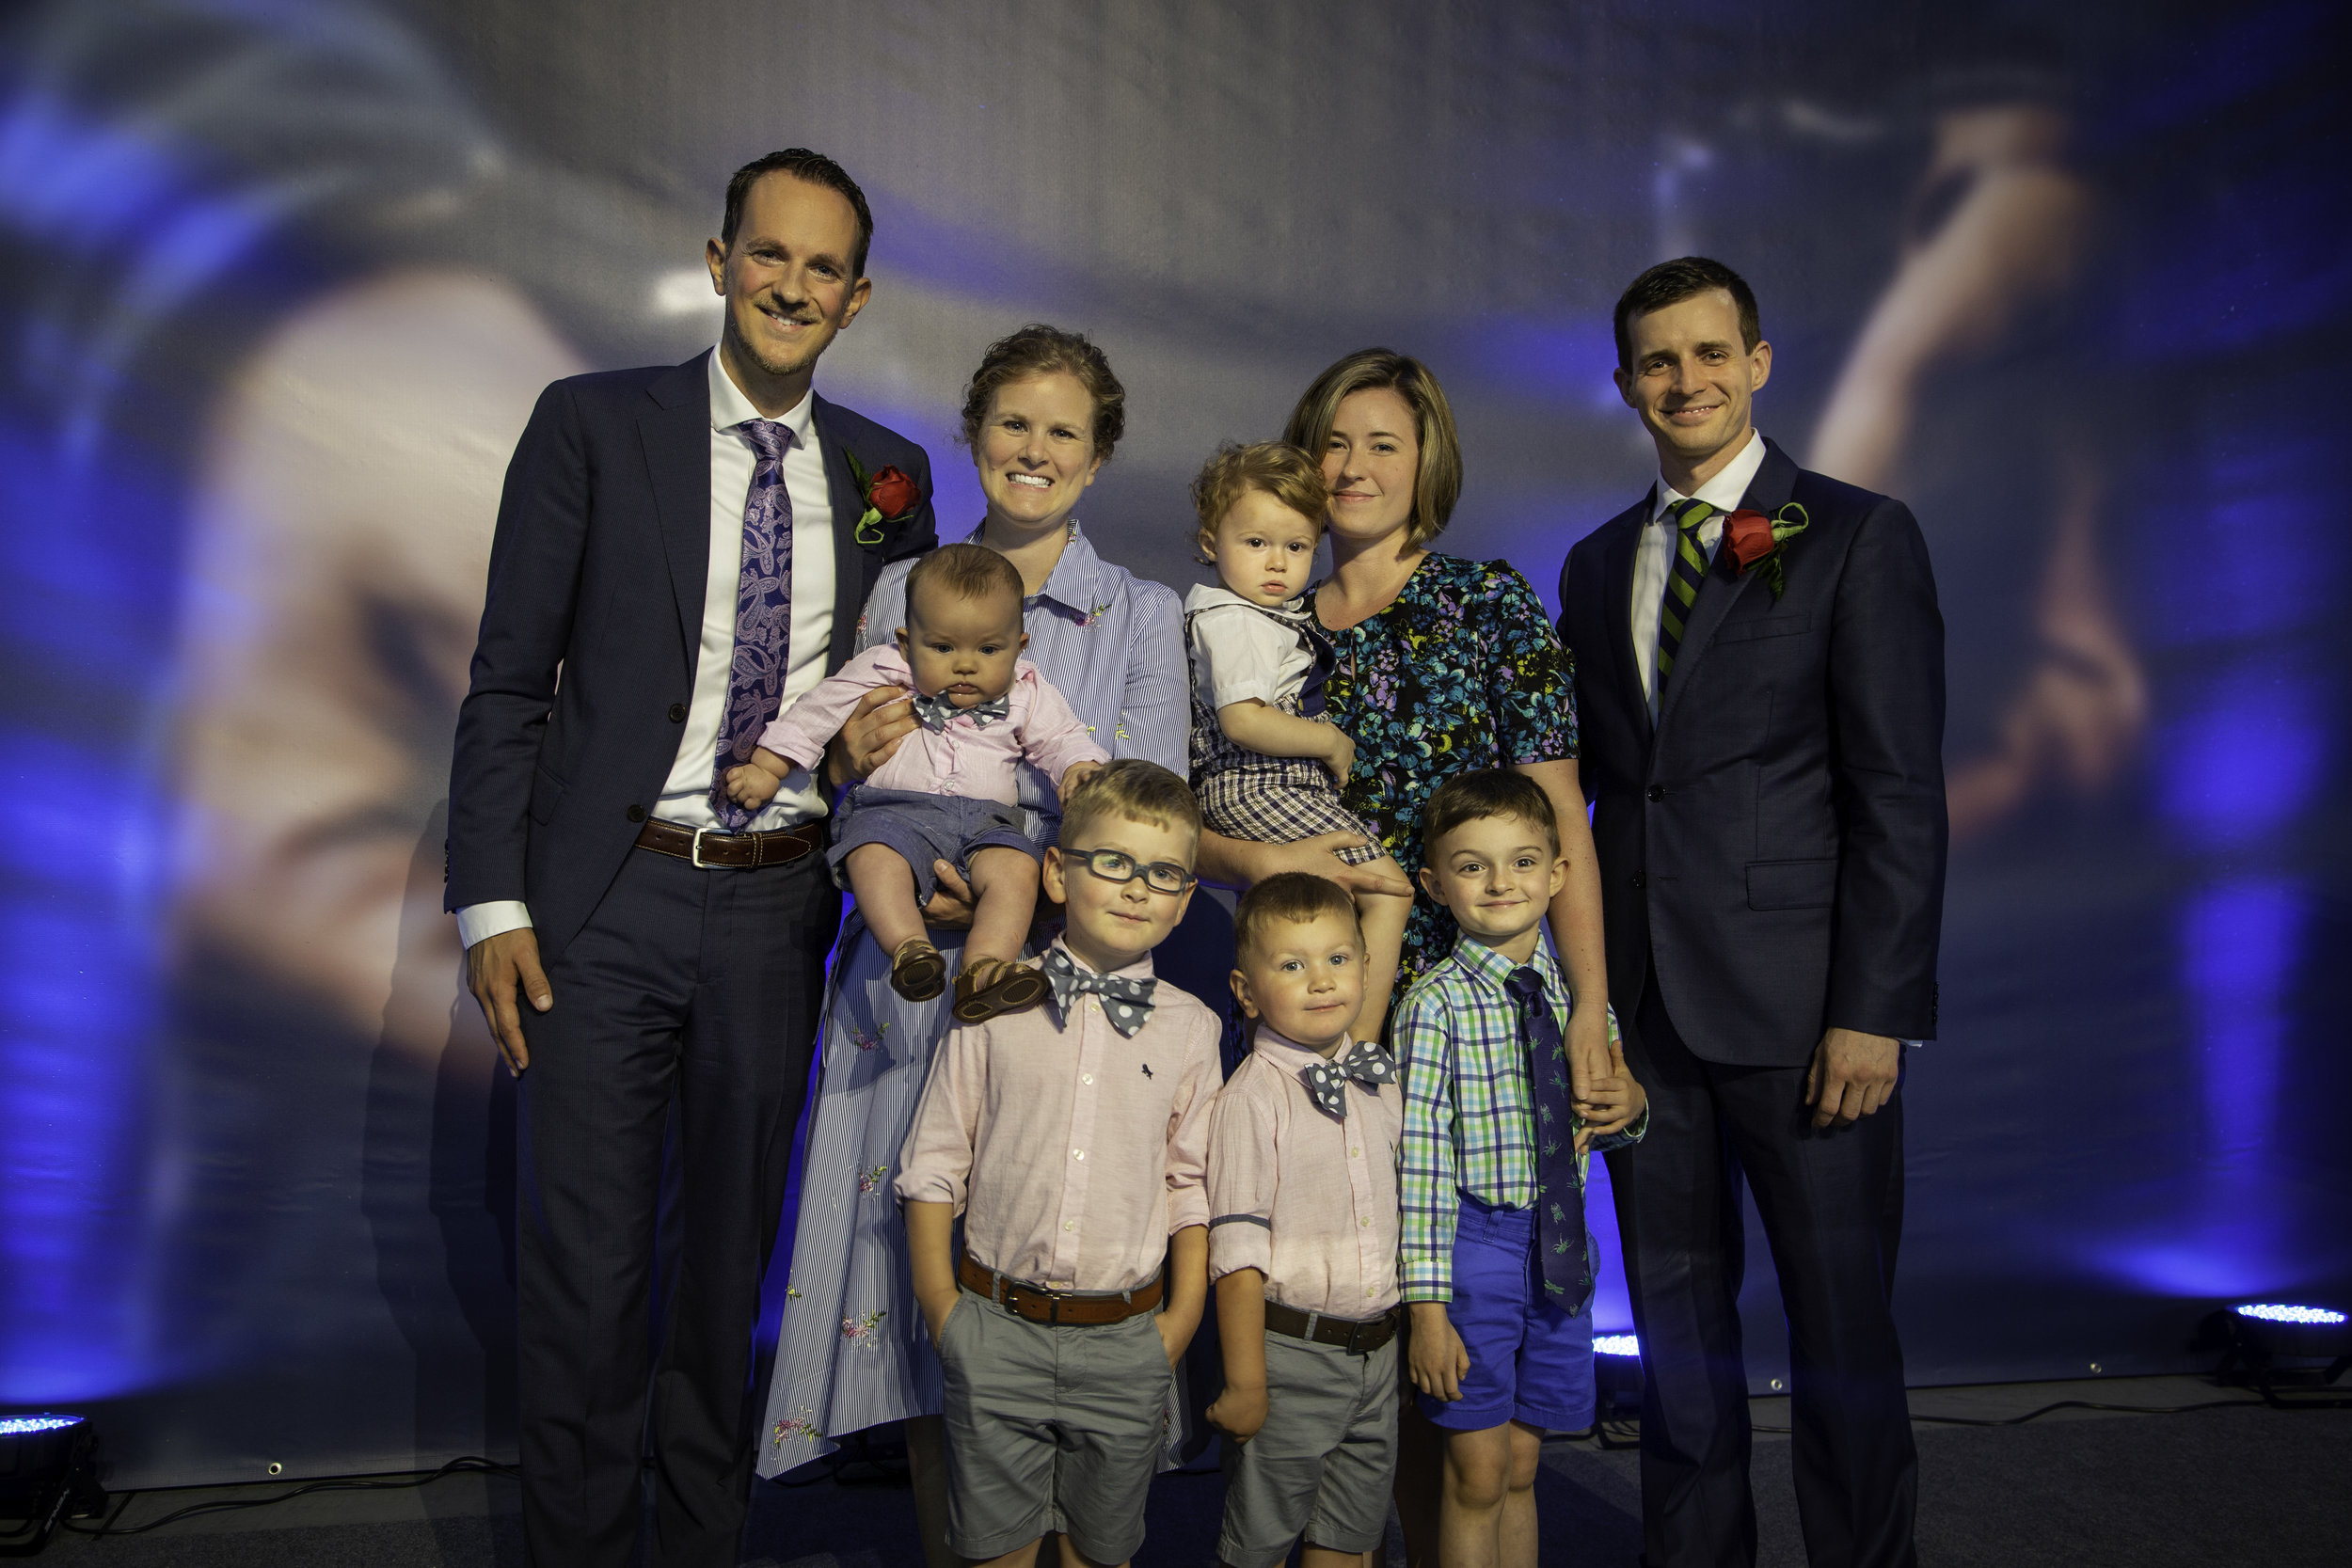 By Stan Hobbs  Samuel Riemersma (left), is accompanied by his wife Amber, and sons, Isaac, Noah, and Elijah. Shane Hochstetler (right) is accompanied by his wife Amy, and sons Jack, and Henry